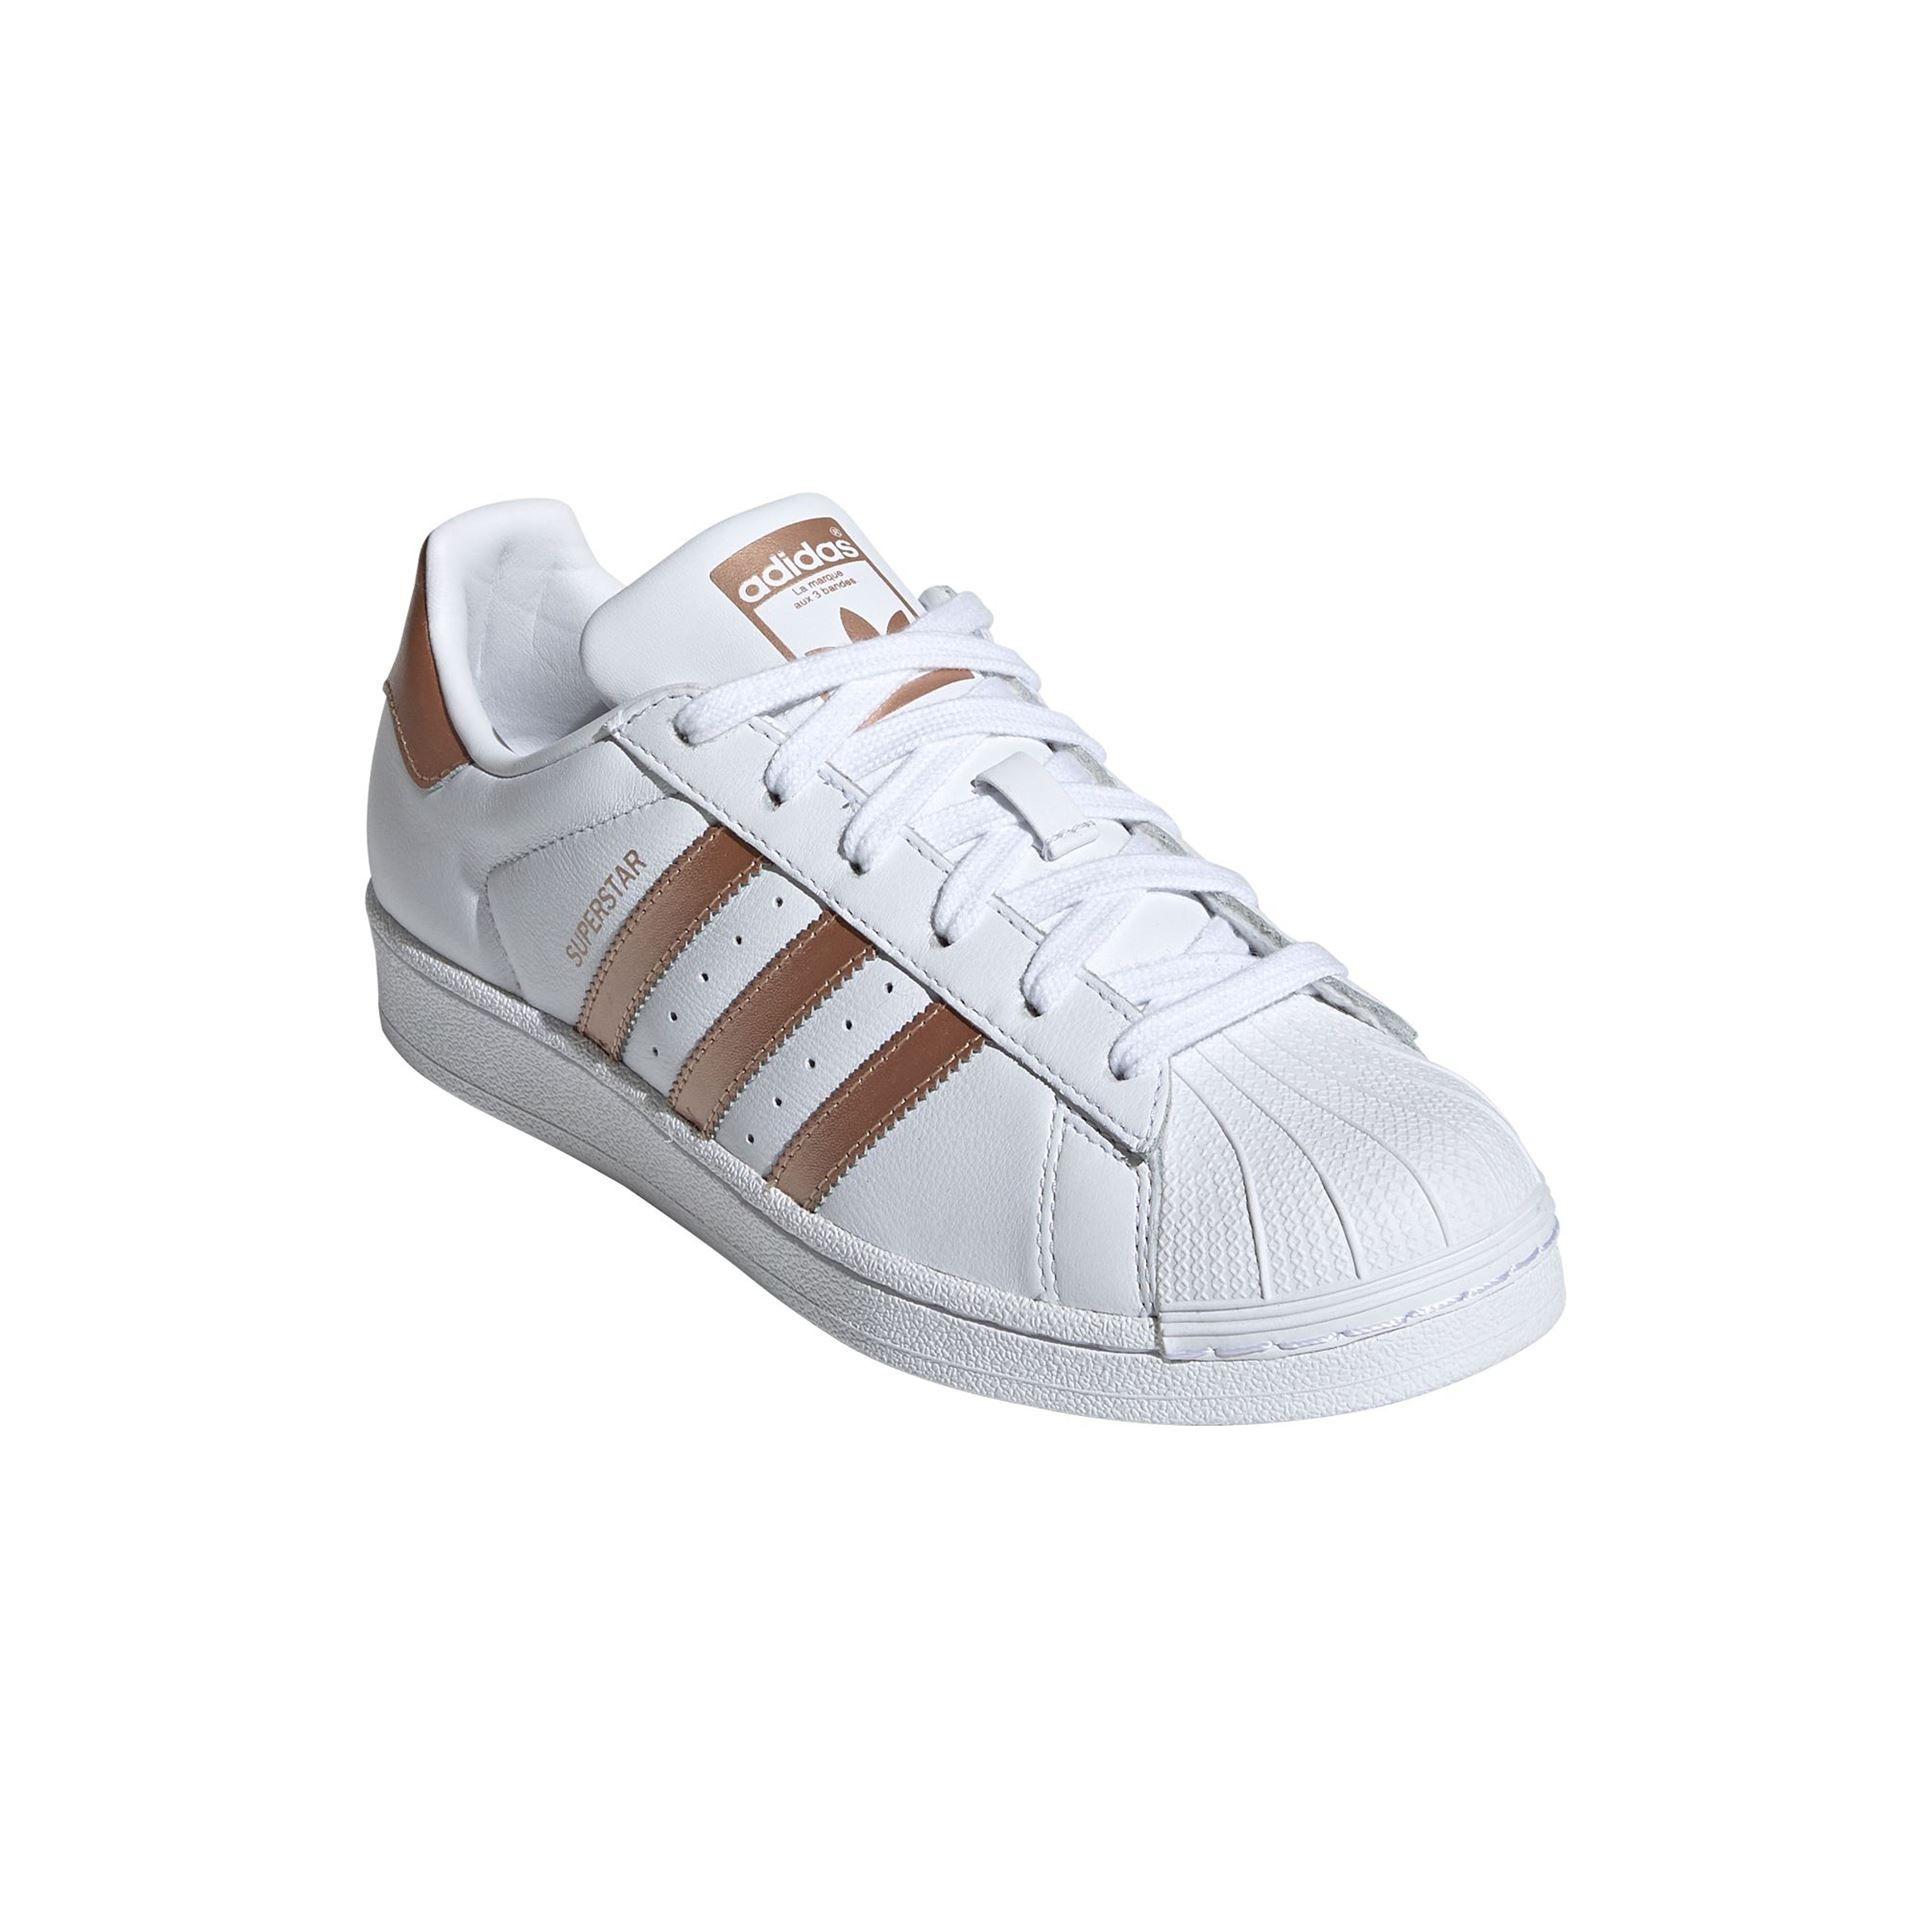 Eurosport Originals Superstar Shoes Women